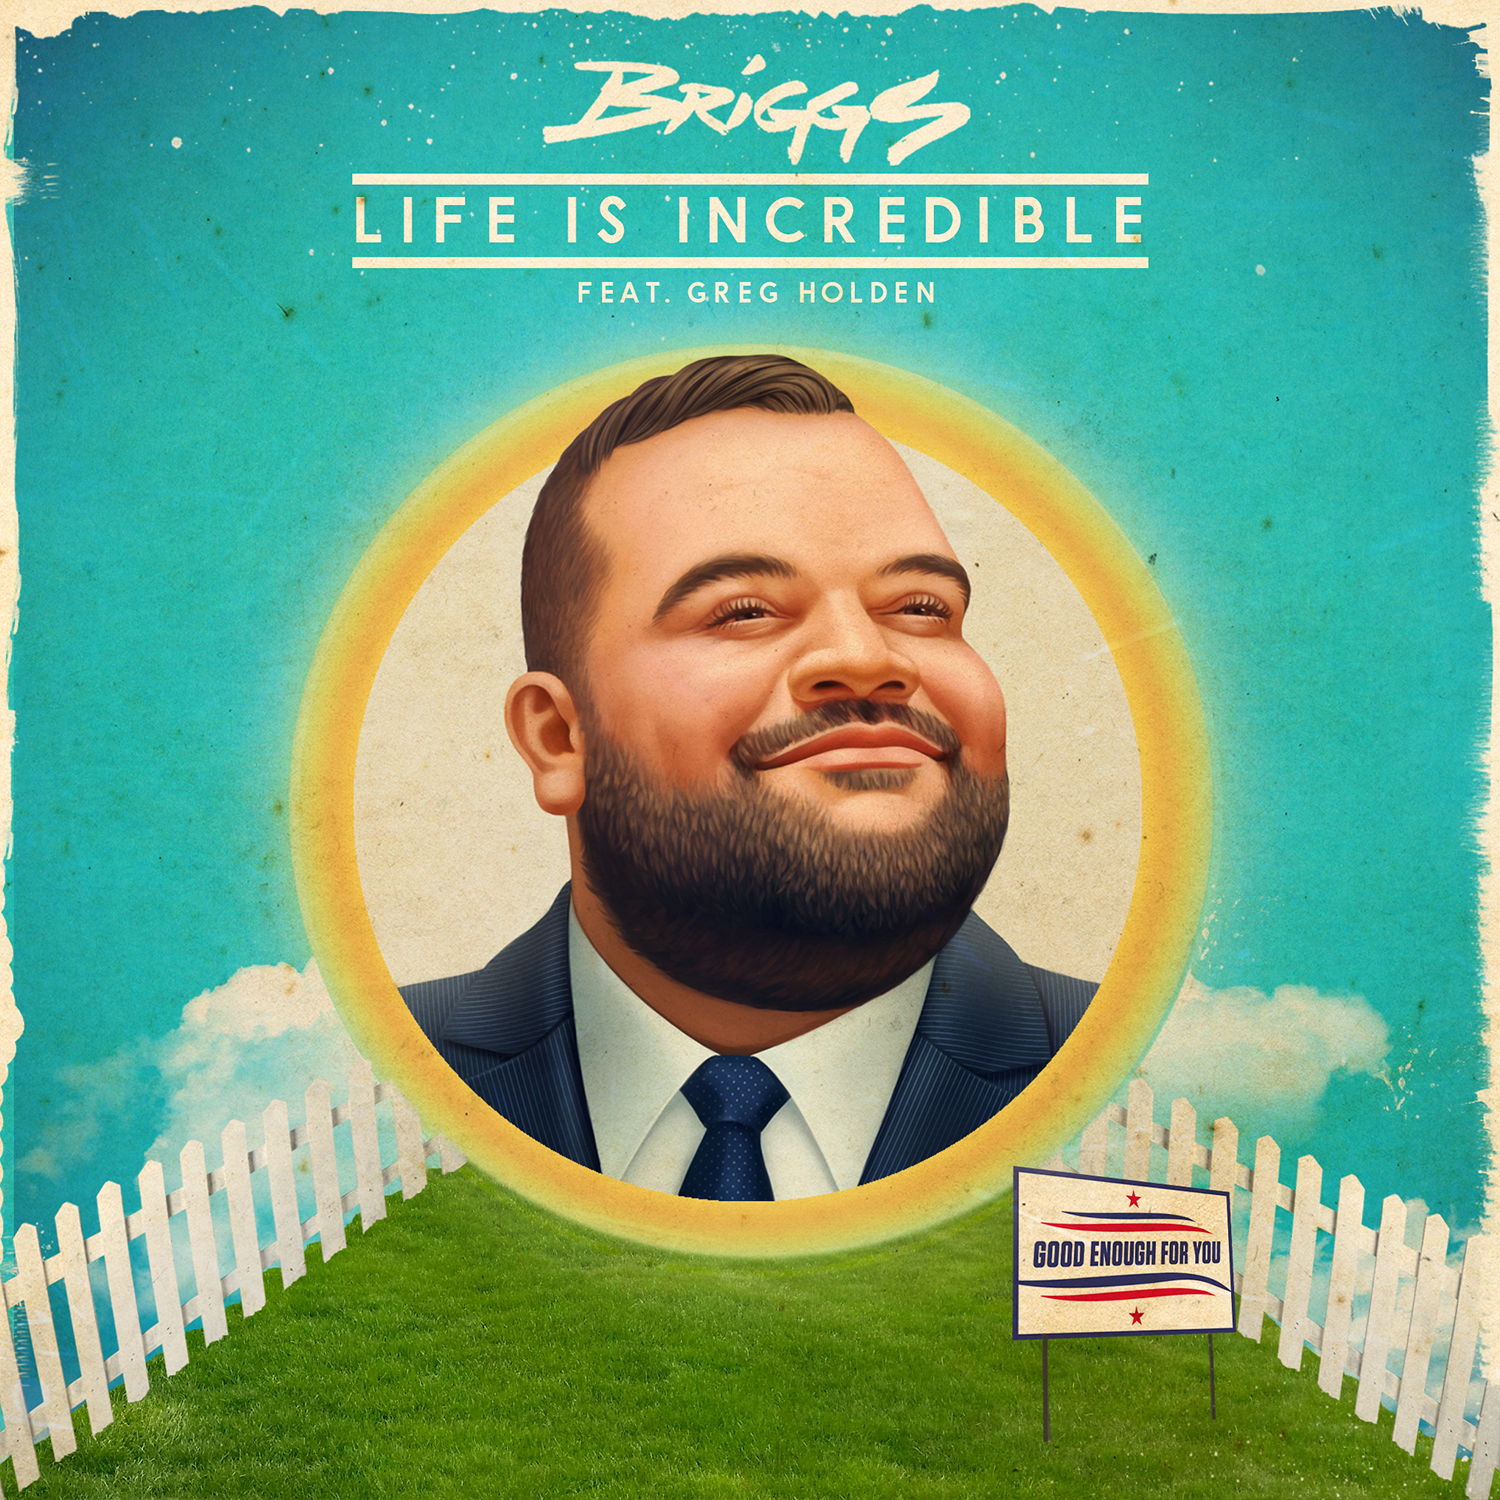 NEW BRIGGS – LIFE IS INCREDIBLE